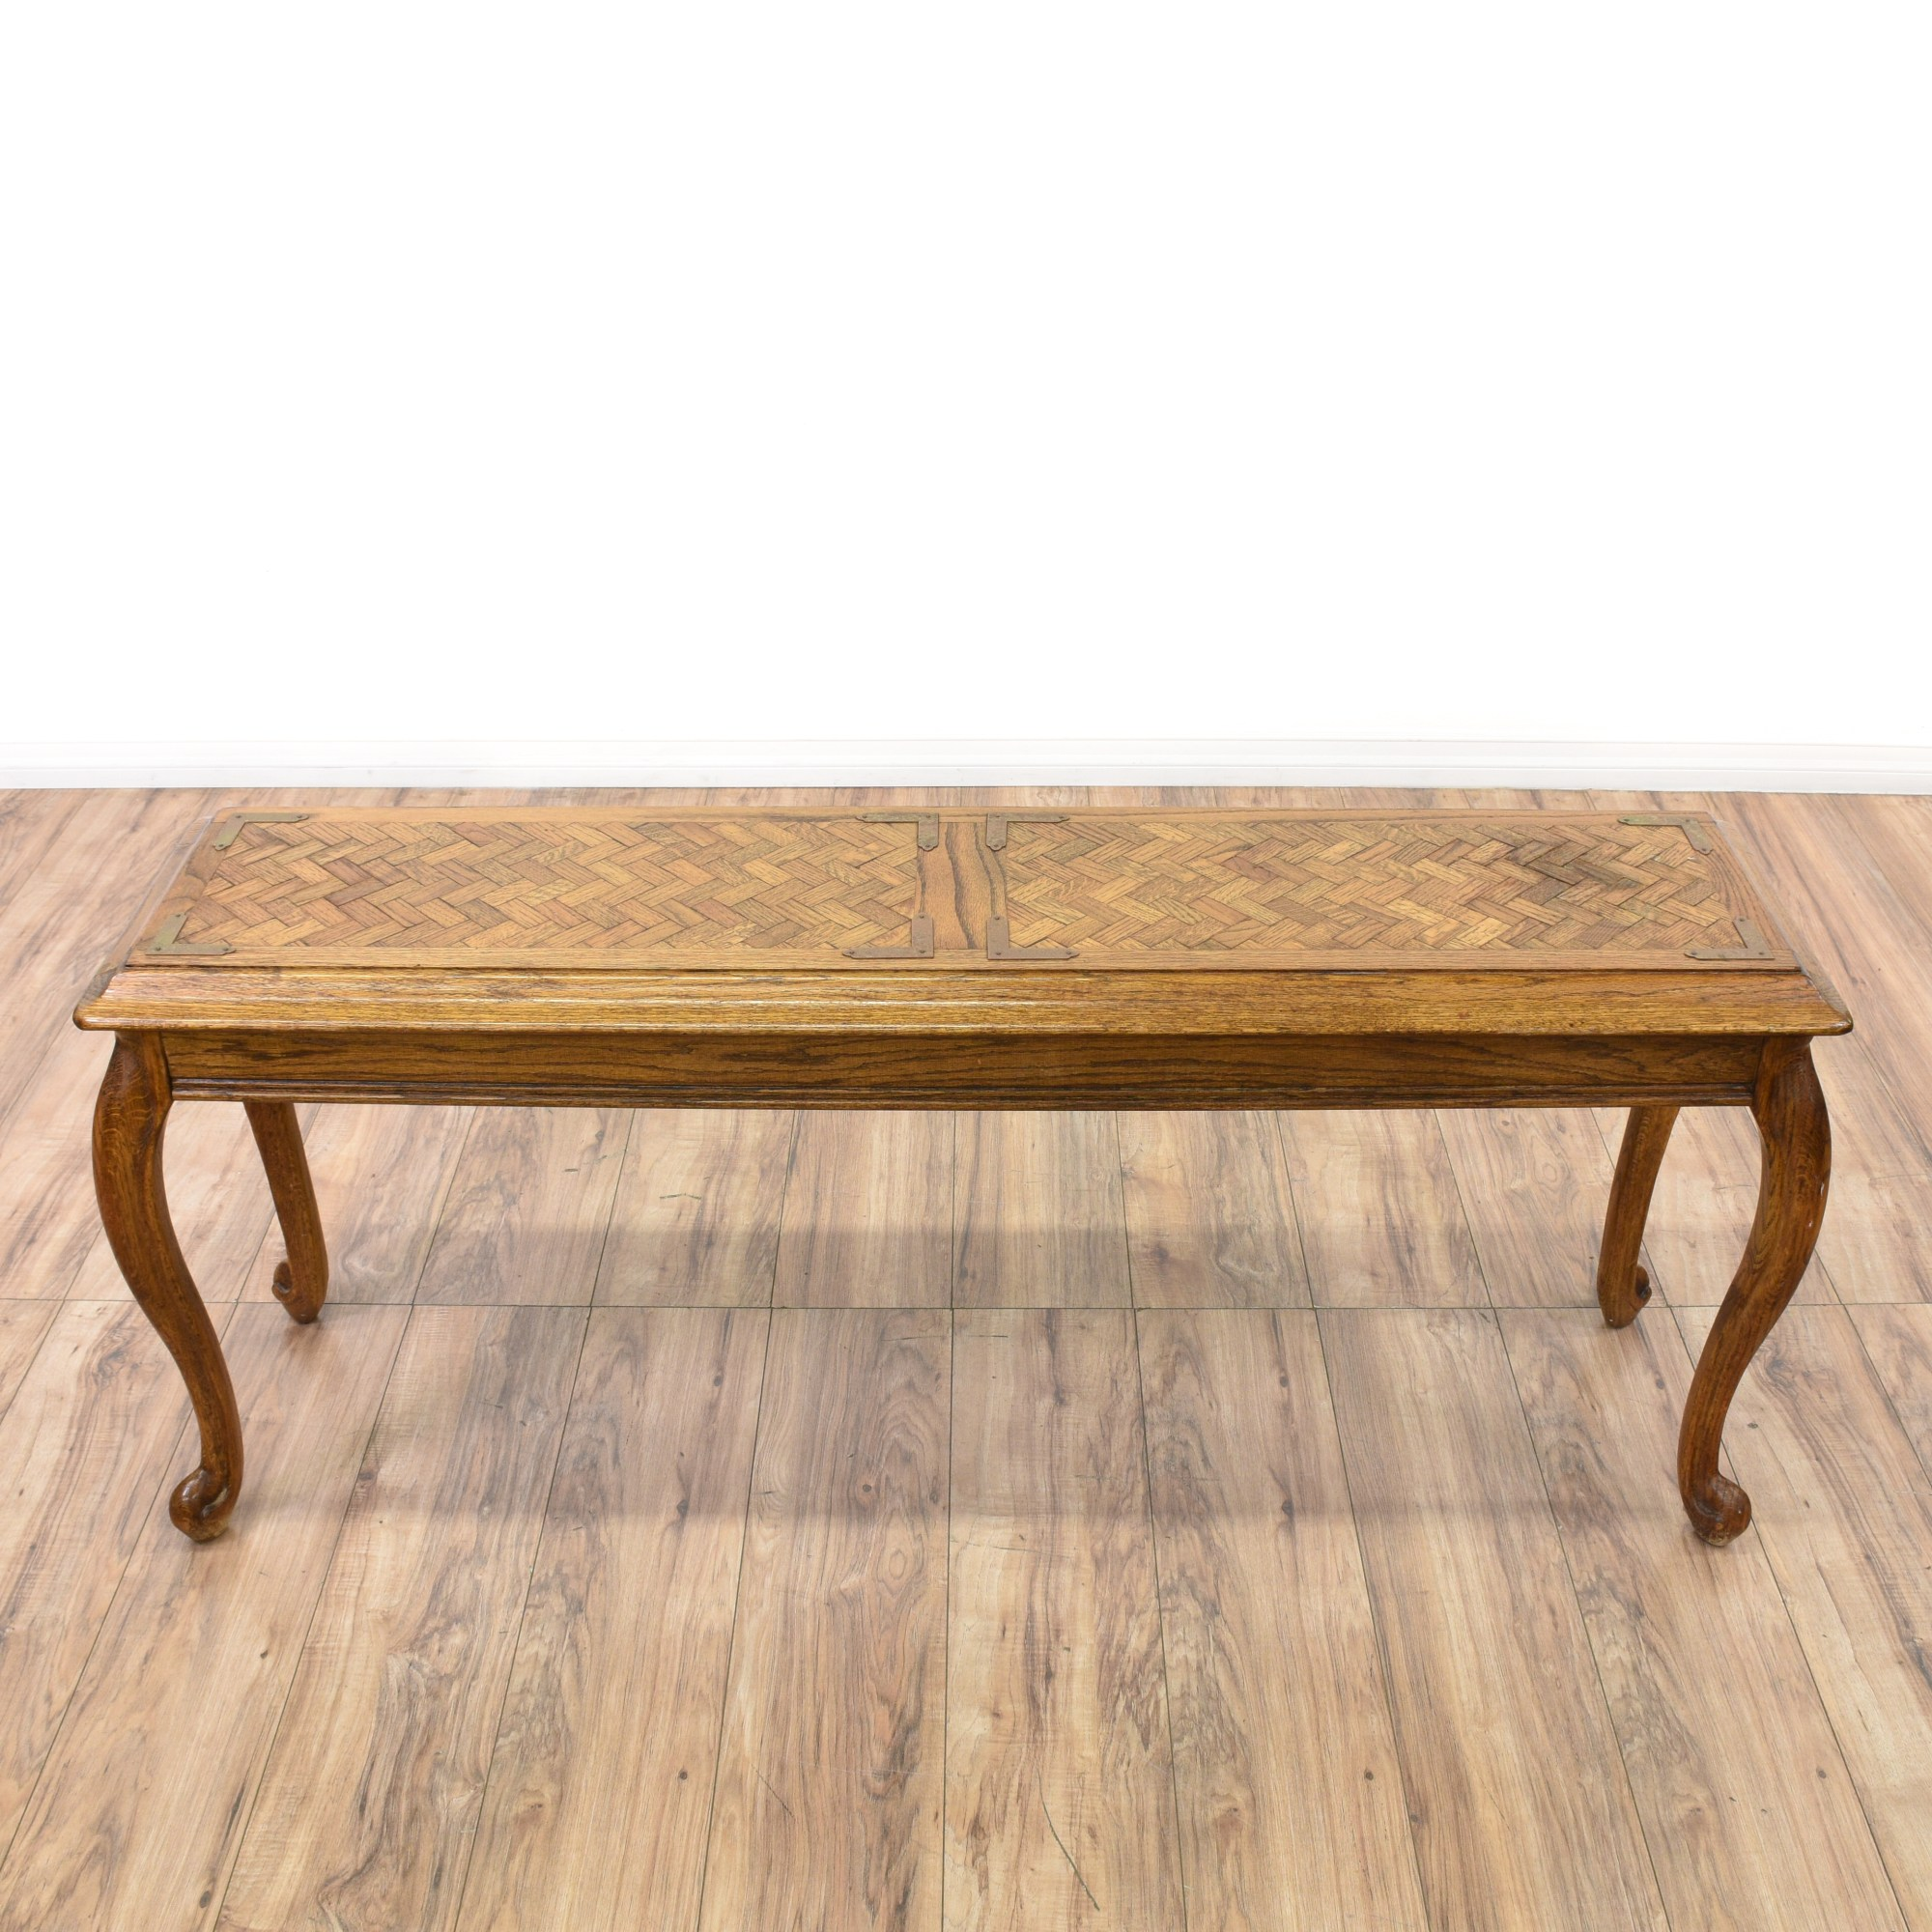 Sofa Queen Anne Style Oak Queen Anne Style Console Sofa Table Loveseat Vintage